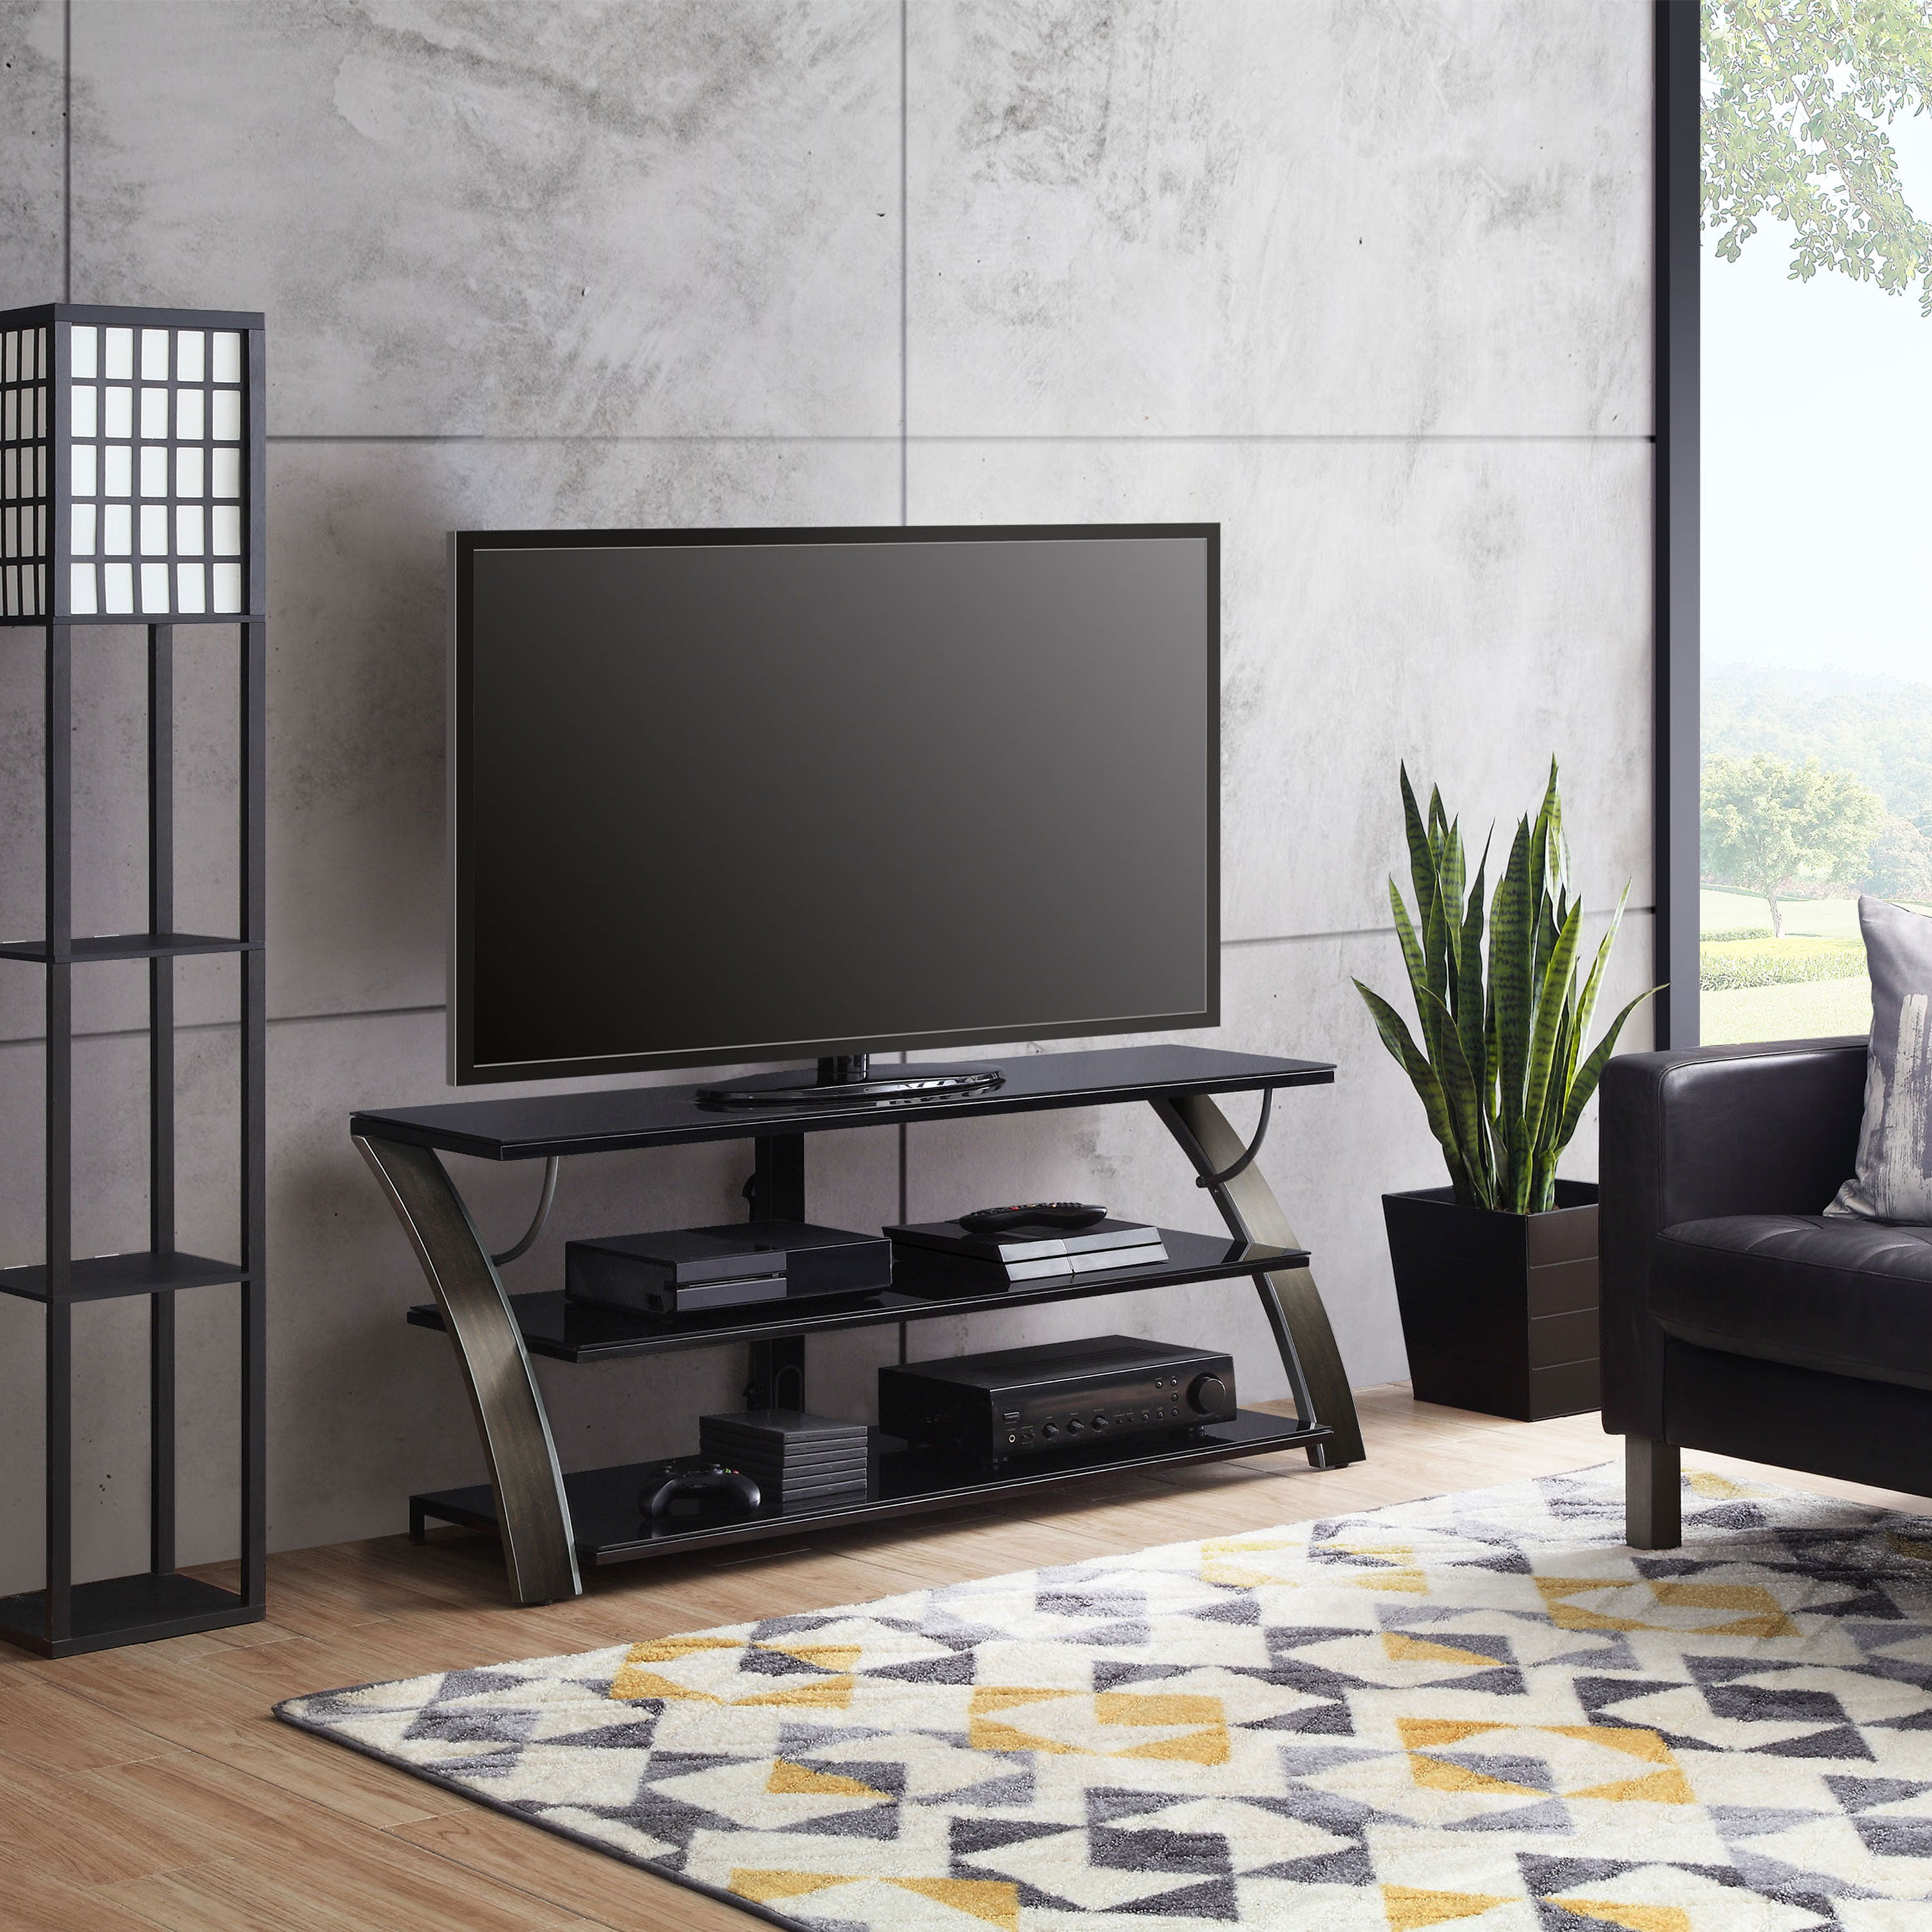 Whalen Payton 3 In 1 Flat Panel Tv Stand For Tvs Up To 65 Multiple Finishes Available Walmart Com Walmart Com